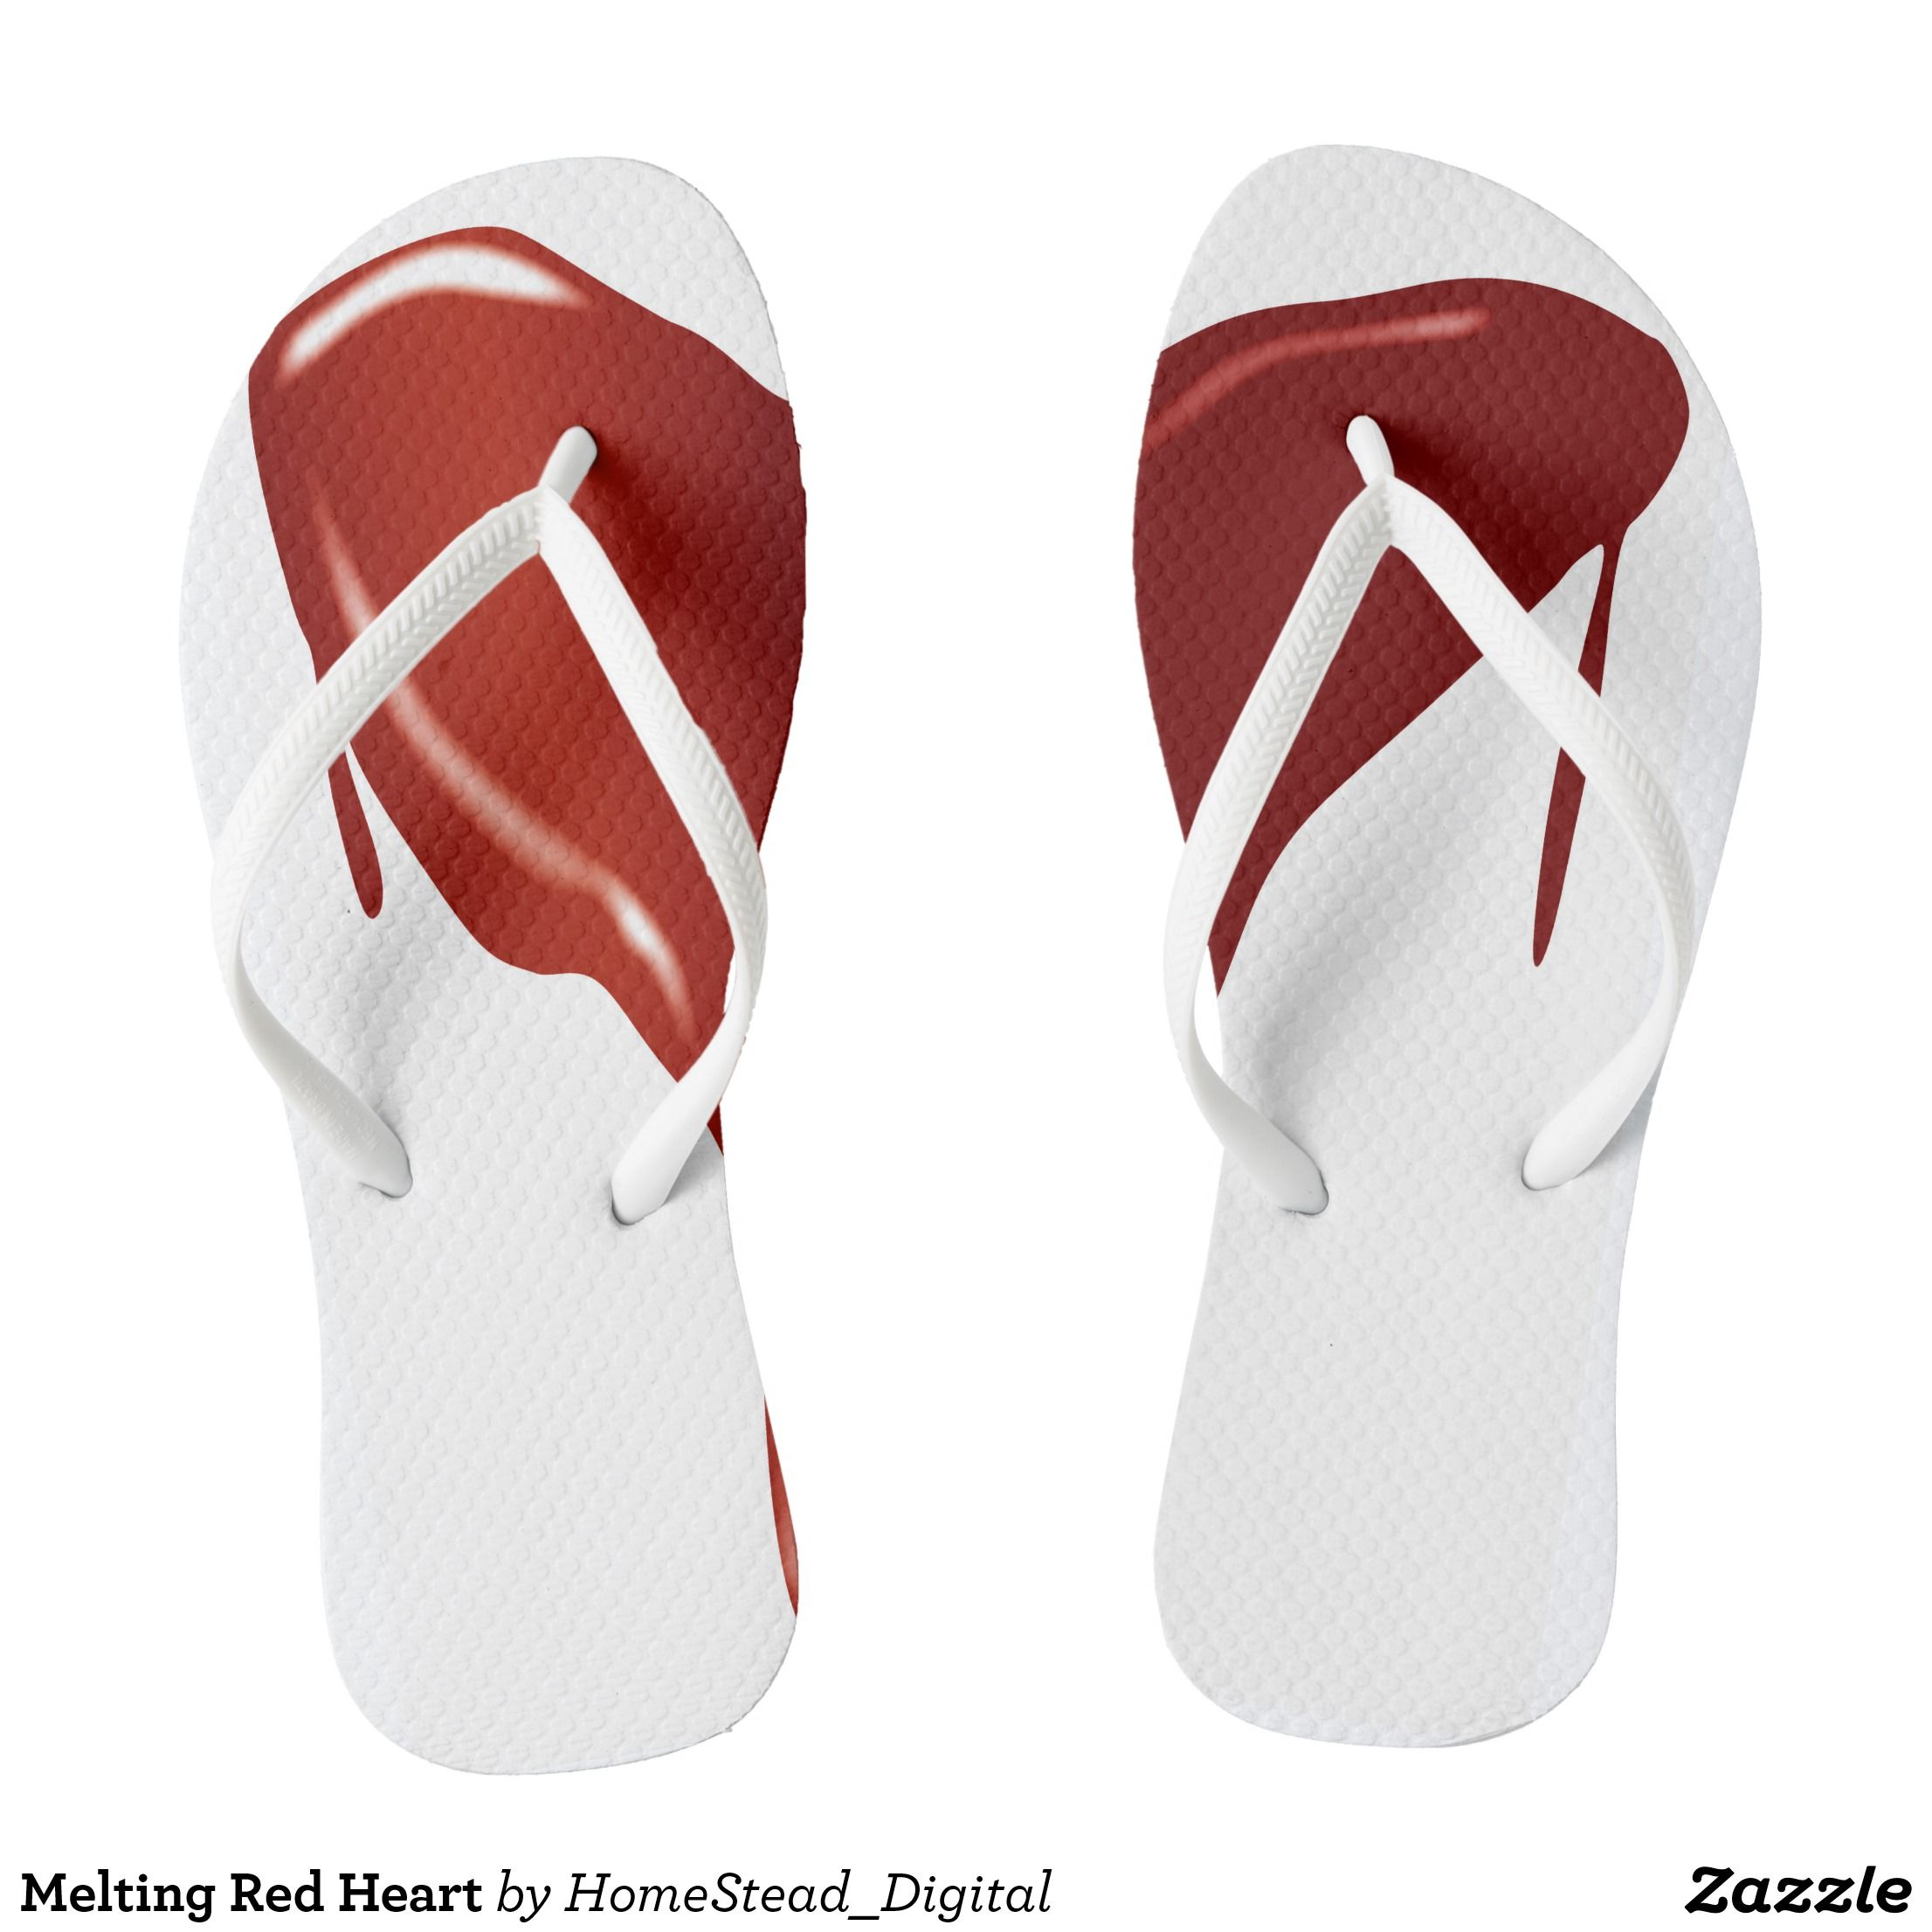 168f9ed332d9f Melting Red Heart Flip Flops - Canvas-Top Rubber-Sole Athletic Shoes By  Talented Fashion And Graphic Designers -  shoes  sneakers  footwear   mensfashion ...